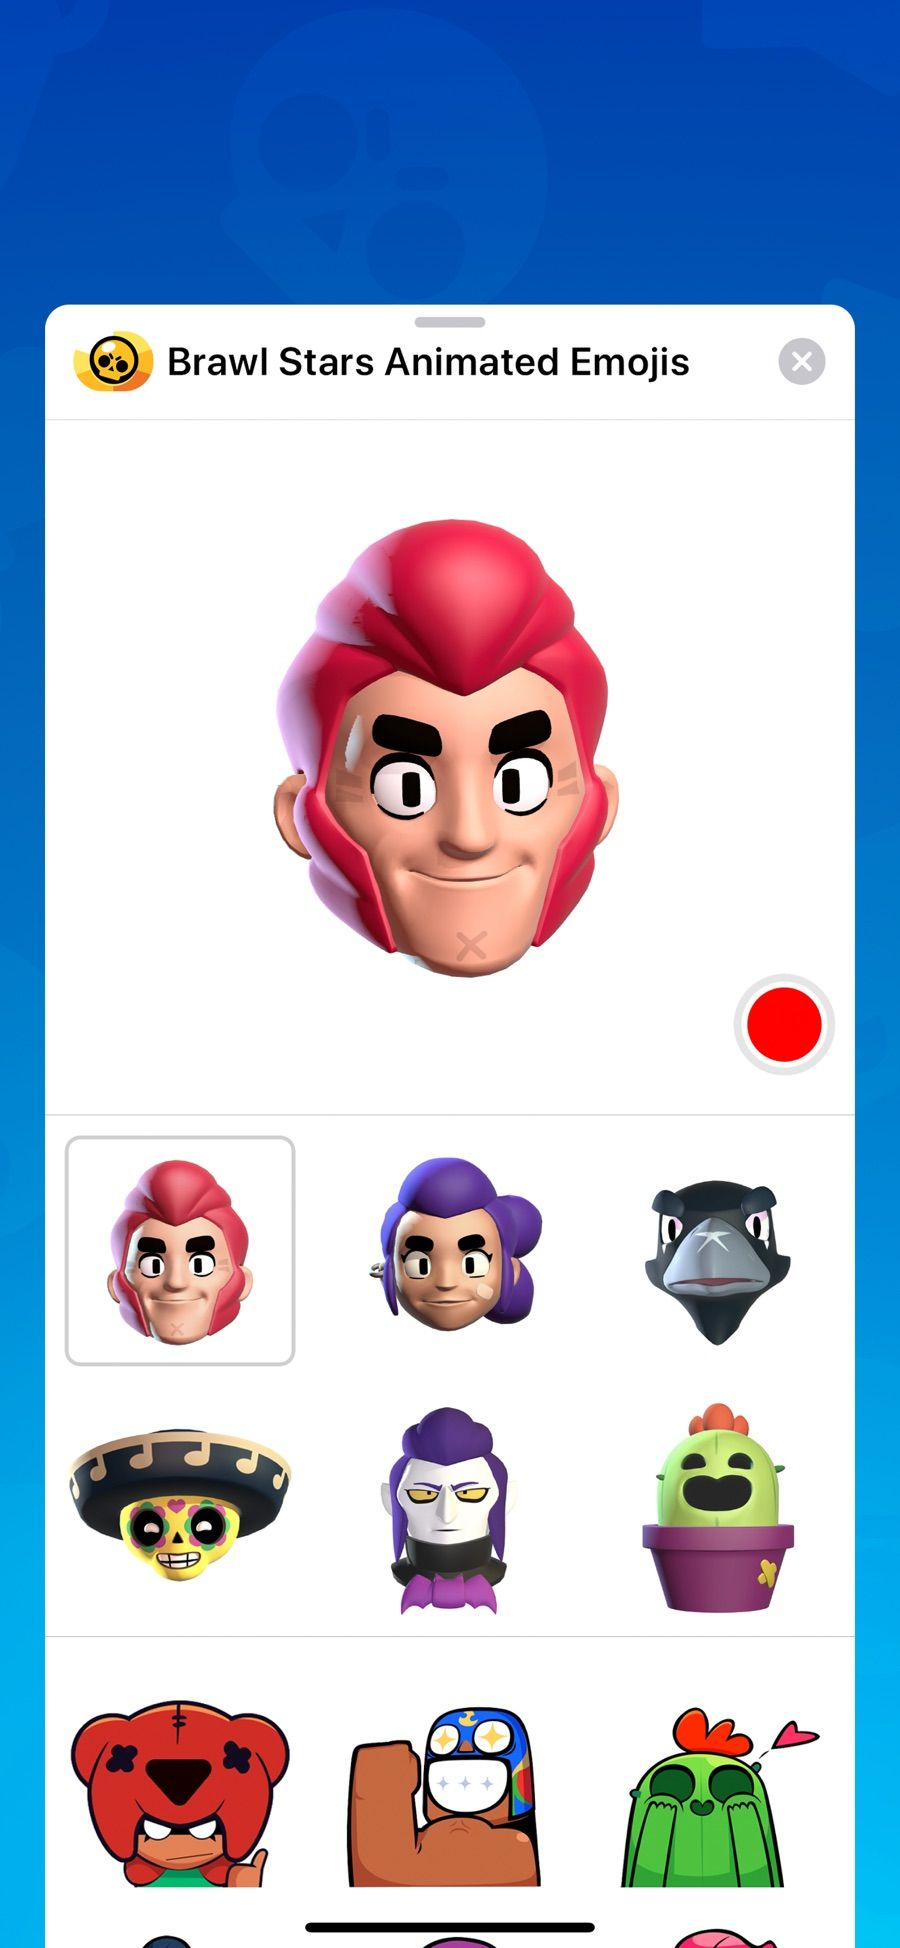 ‎Brawl Stars Animated Emojis on the App Store in 2020